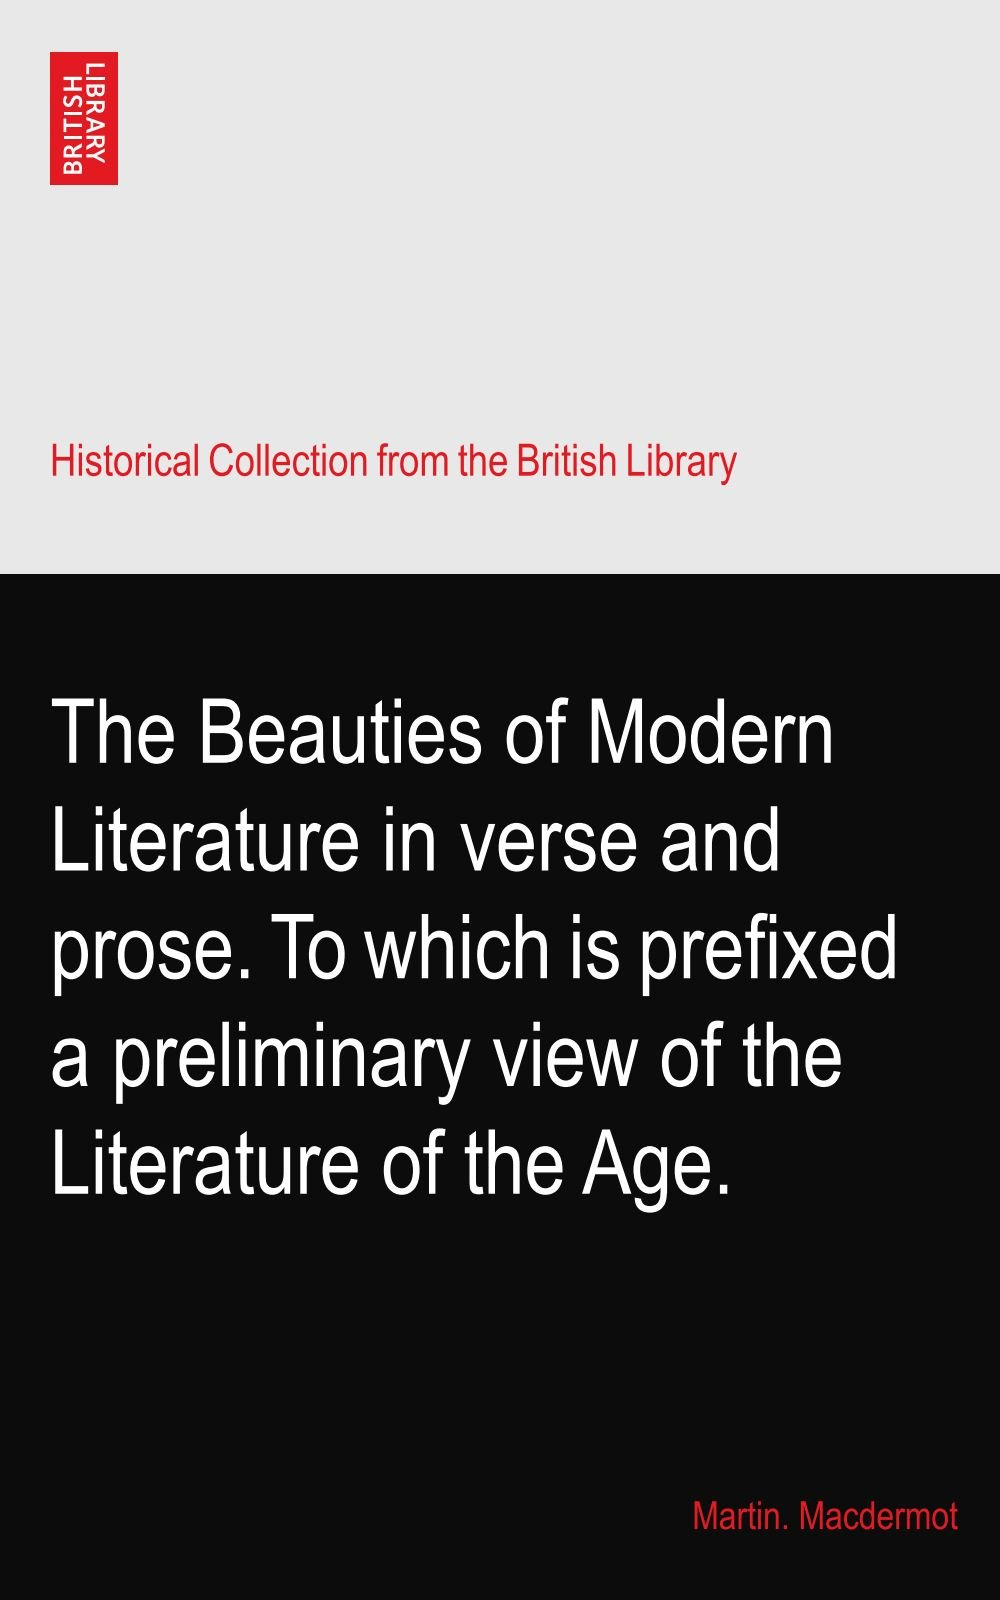 Download The Beauties of Modern Literature in verse and prose. To which is prefixed a preliminary view of the Literature of the Age. ebook